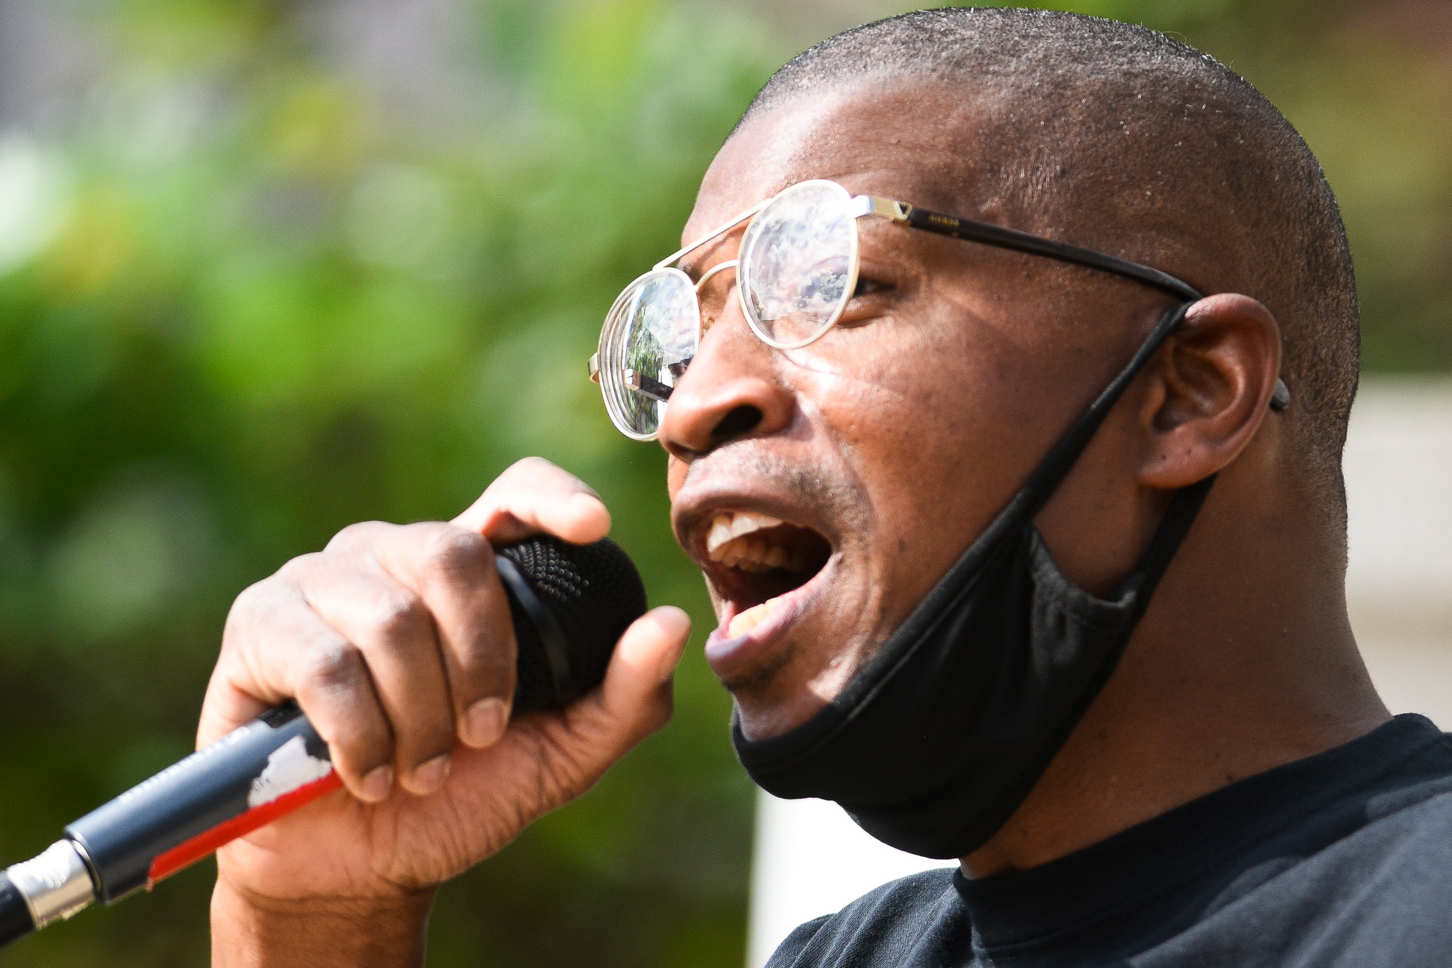 Kevin Mitchell, a community organizer, speaking at a protest event on Thursday, June 11.